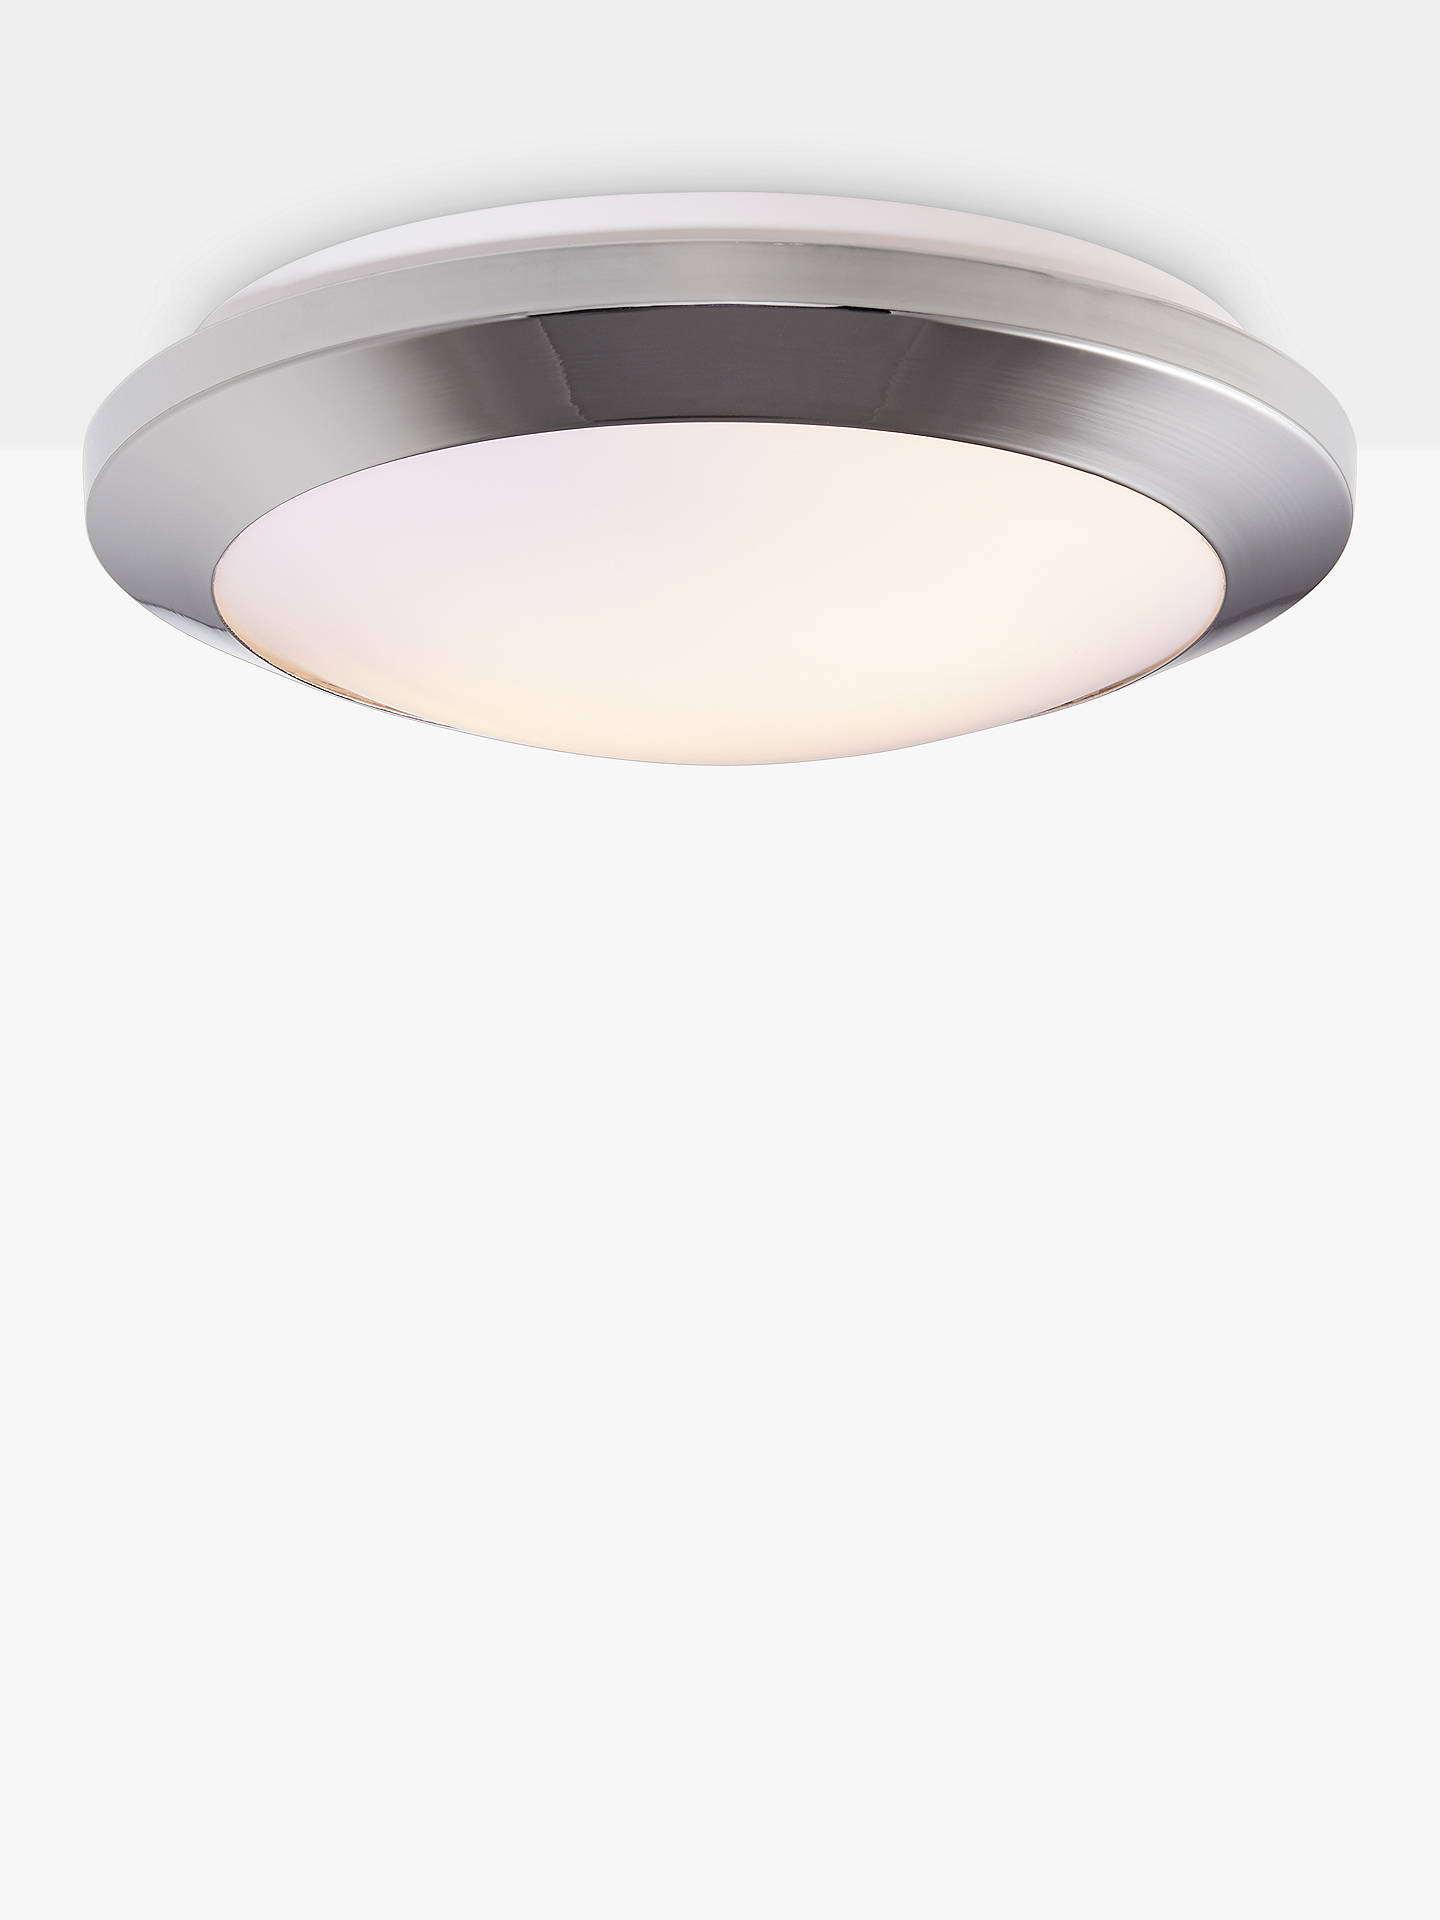 buy popular dd83b a9fab John Lewis & Partners Kara Flush Bathroom Ceiling Light, Chrome